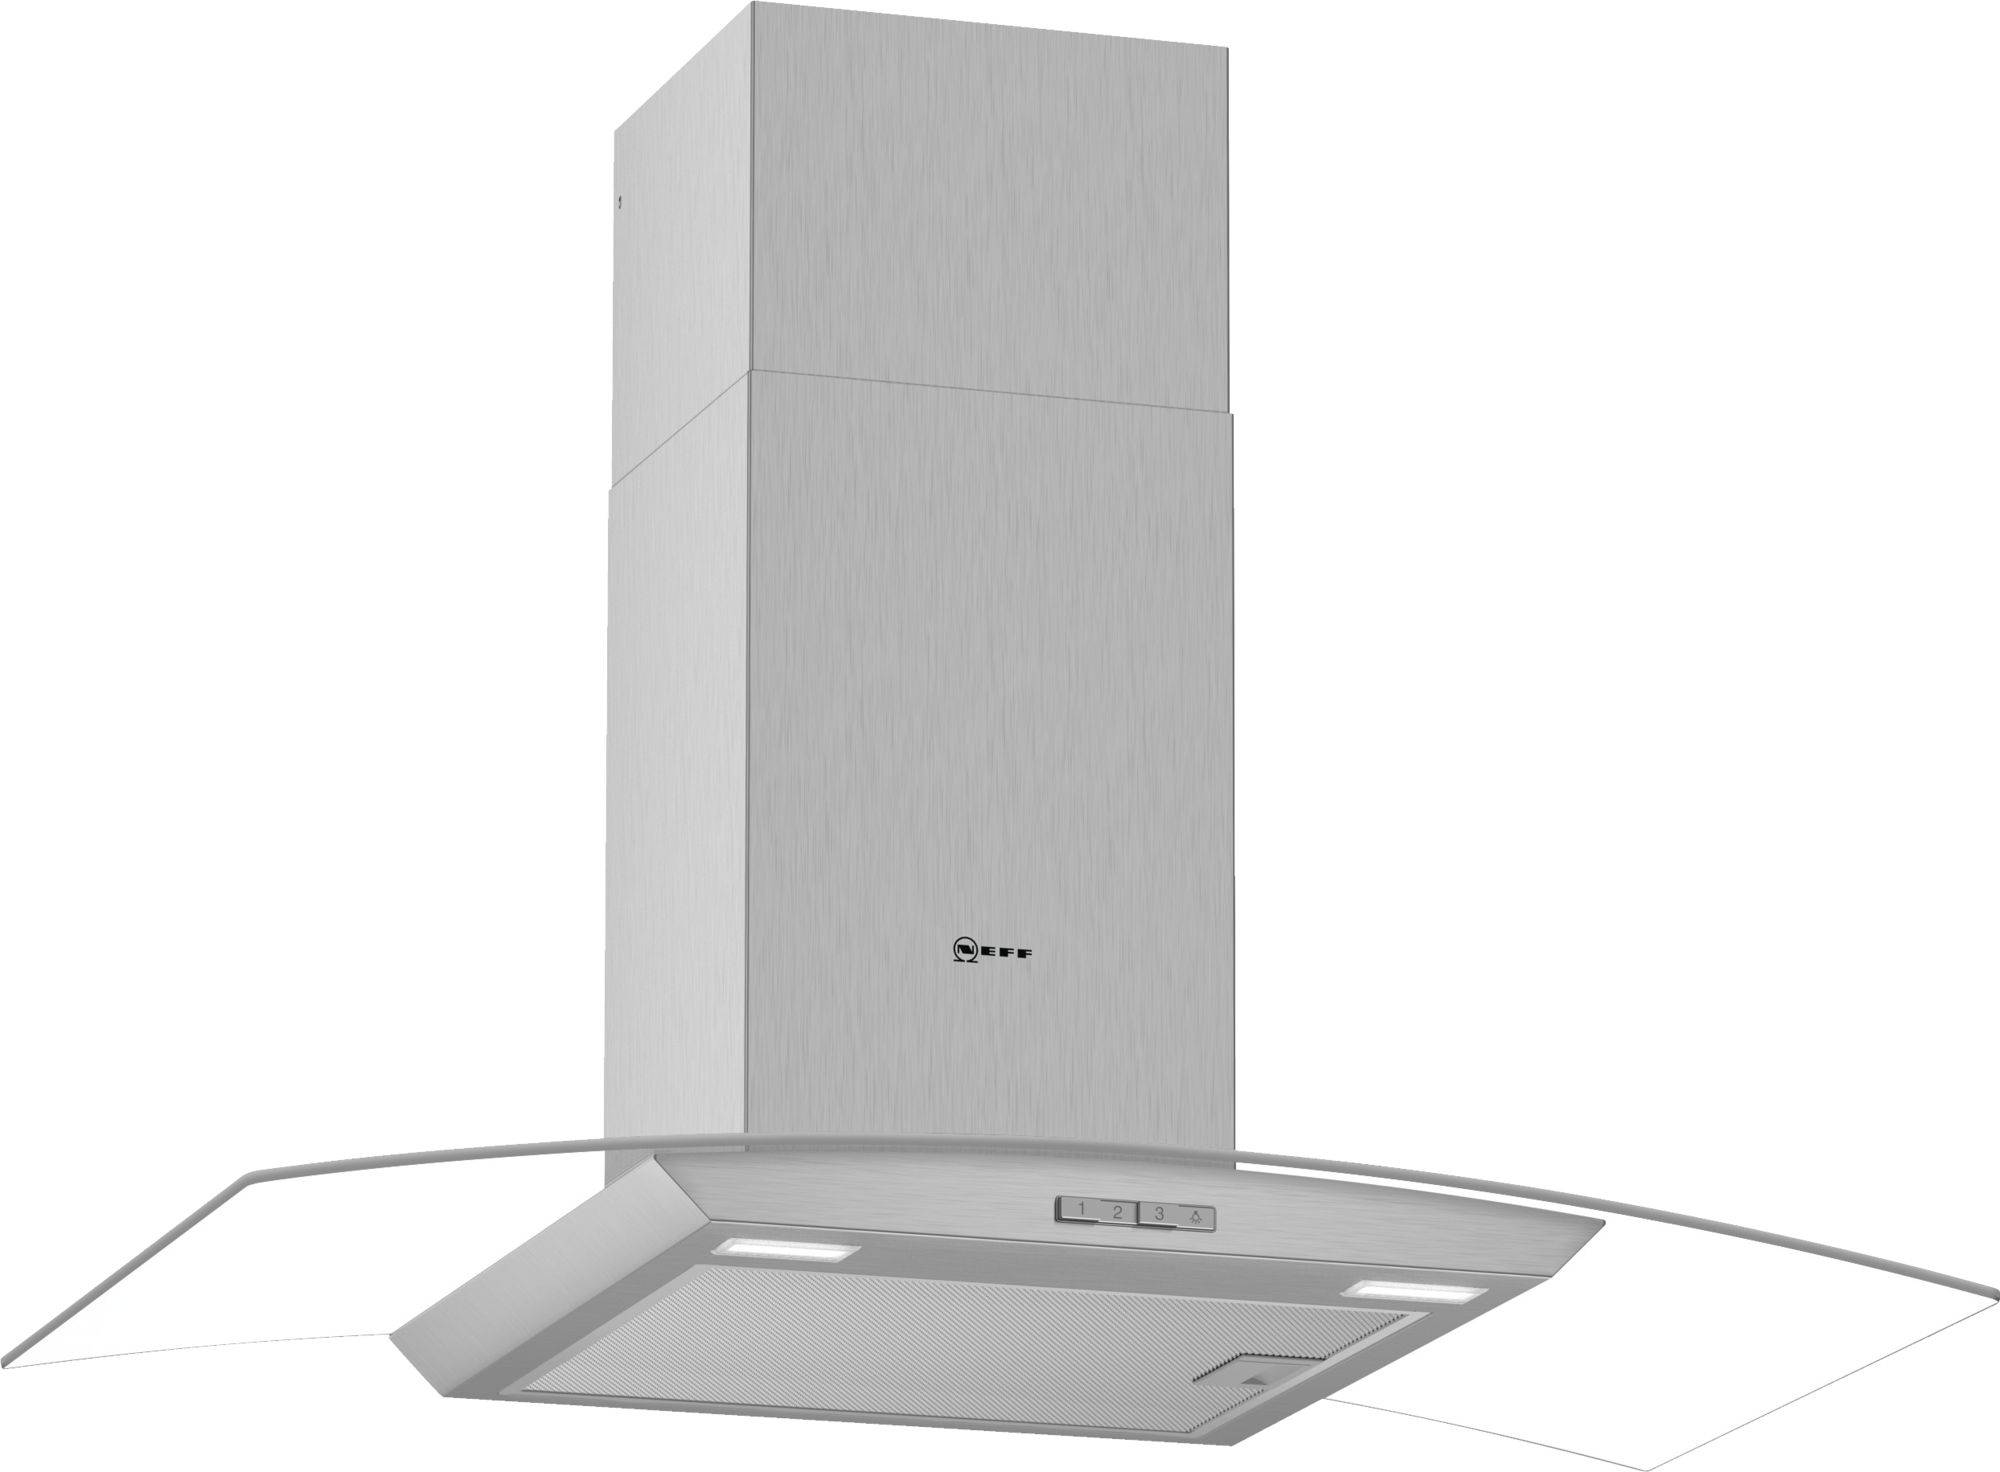 culina ubboxtc90 90cm chimney hood stainless steel